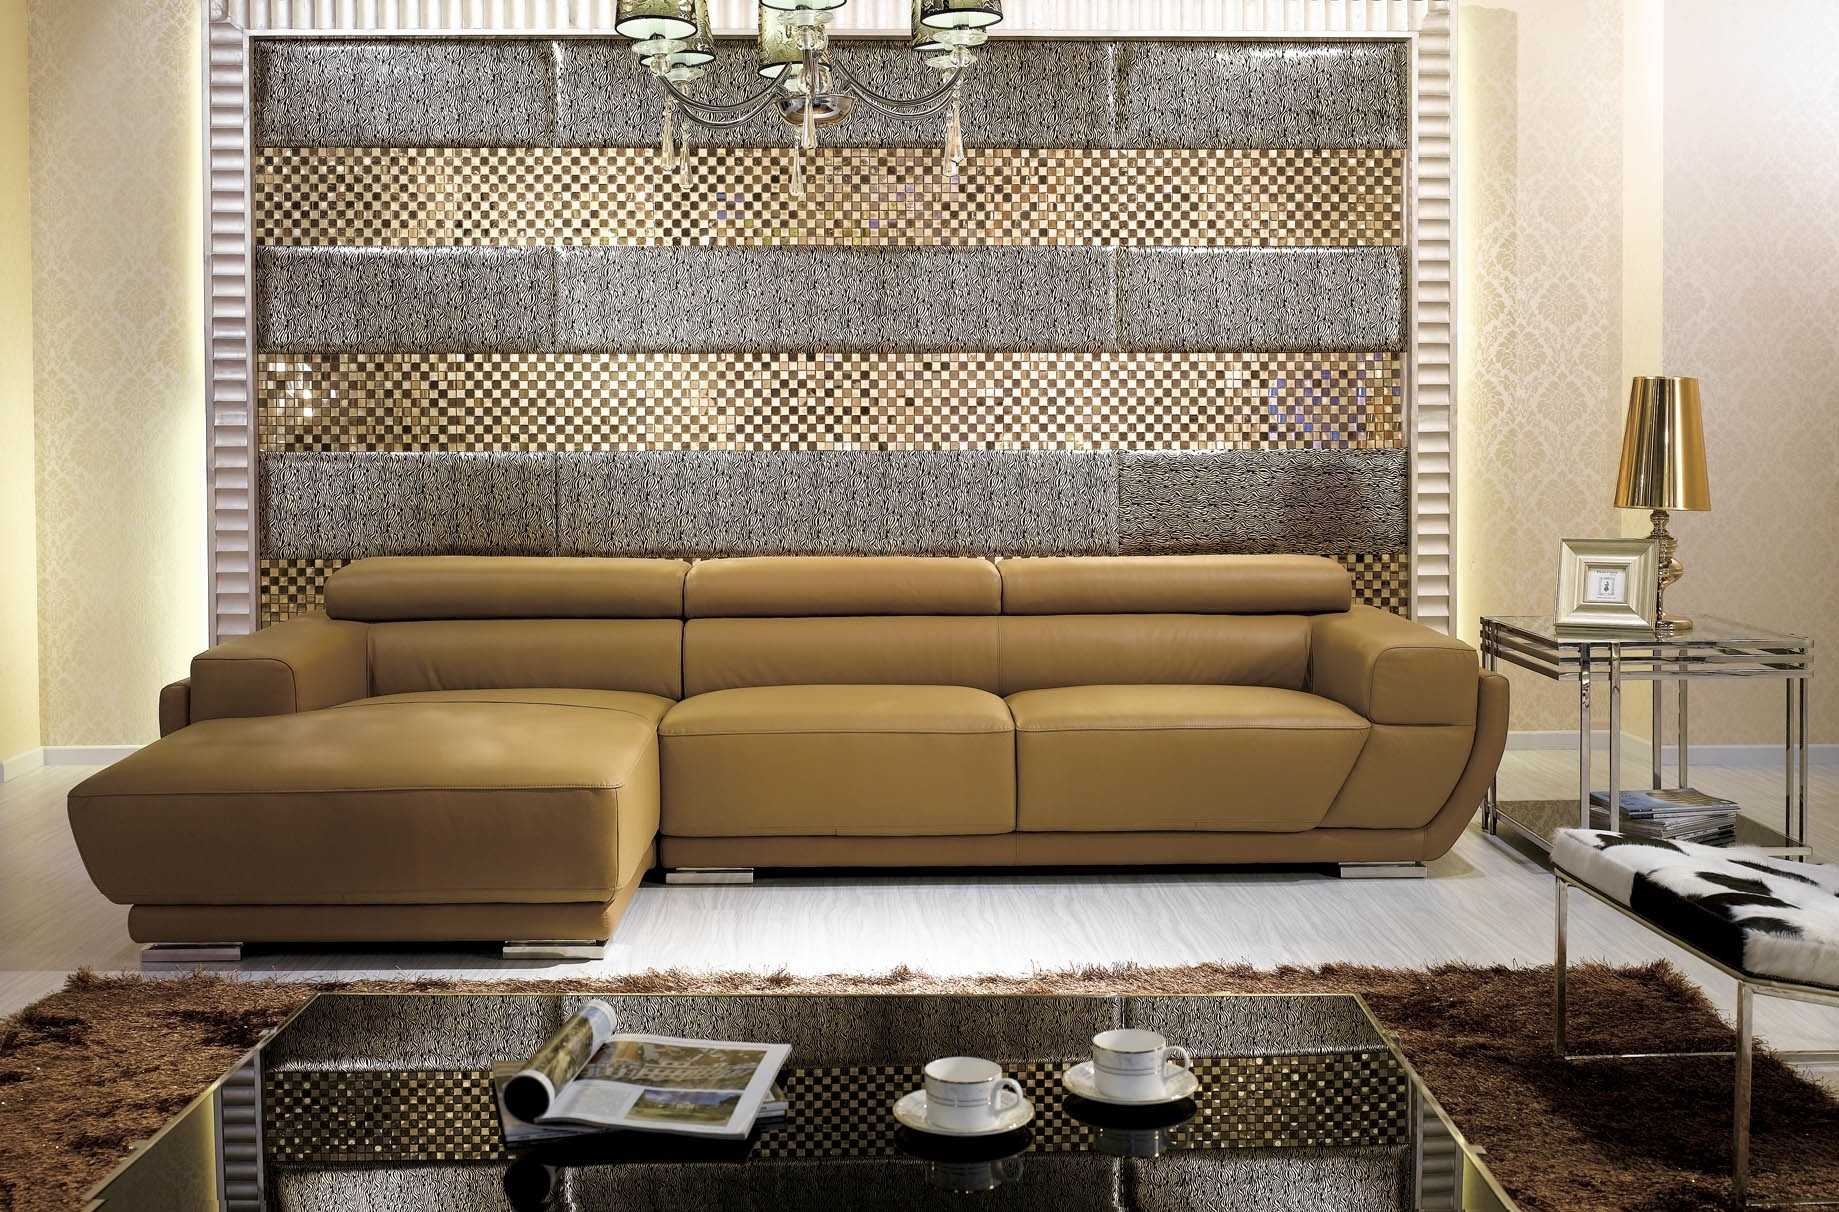 K8300 Modern Camel Italian Leather Sectional Sofa with regard to Camel Colored Sectional Sofas (Image 9 of 10)